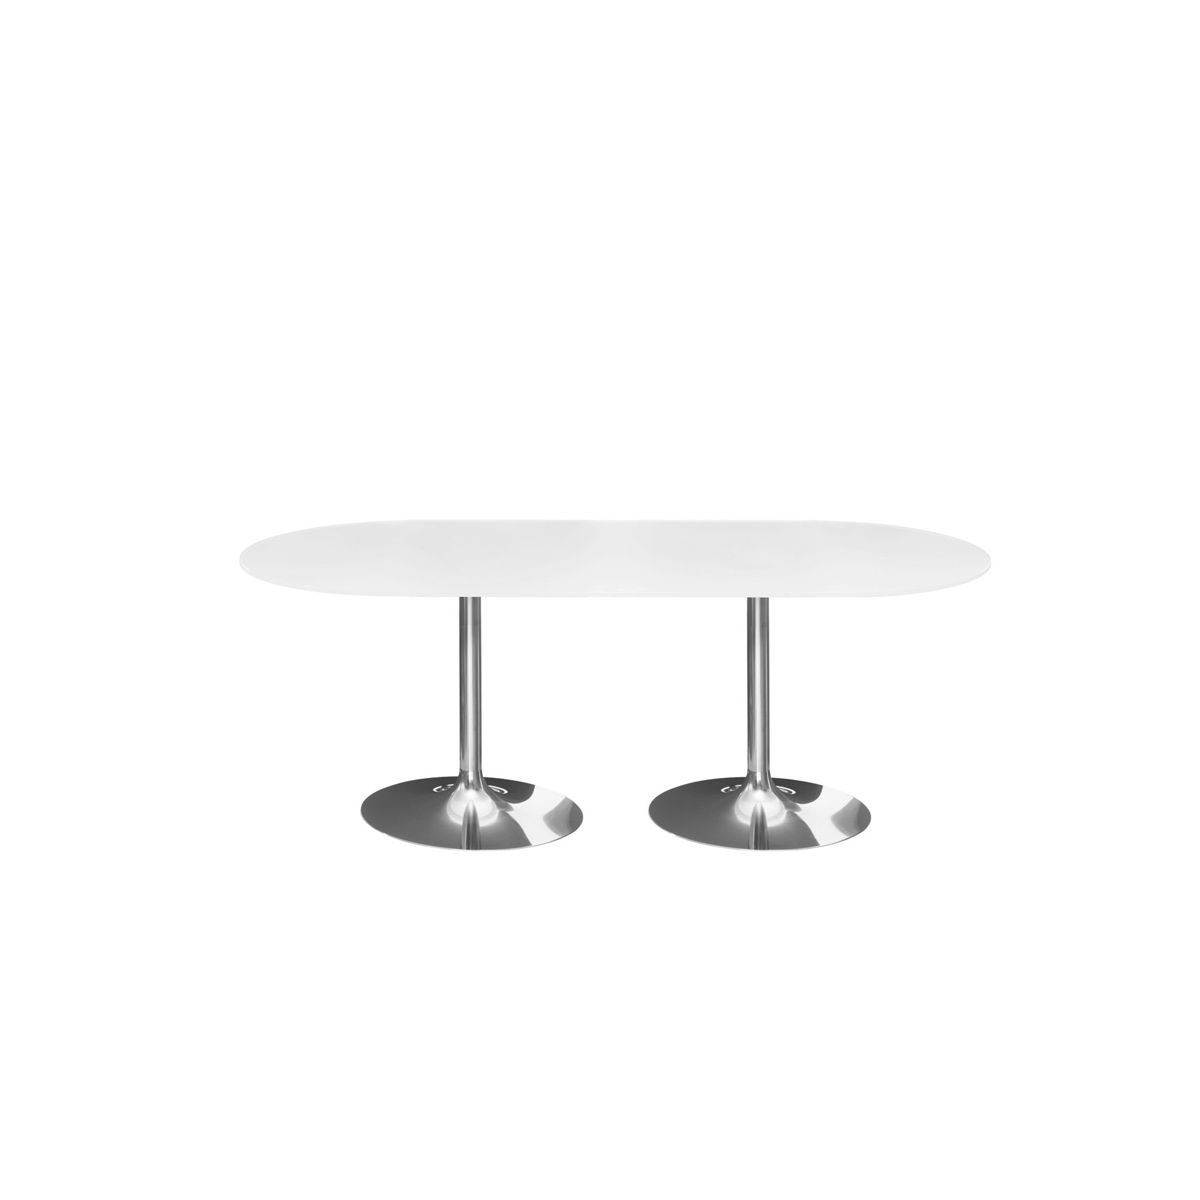 Table salle manger joe 8 myyour zendart design for Table salle a manger 8 personnes